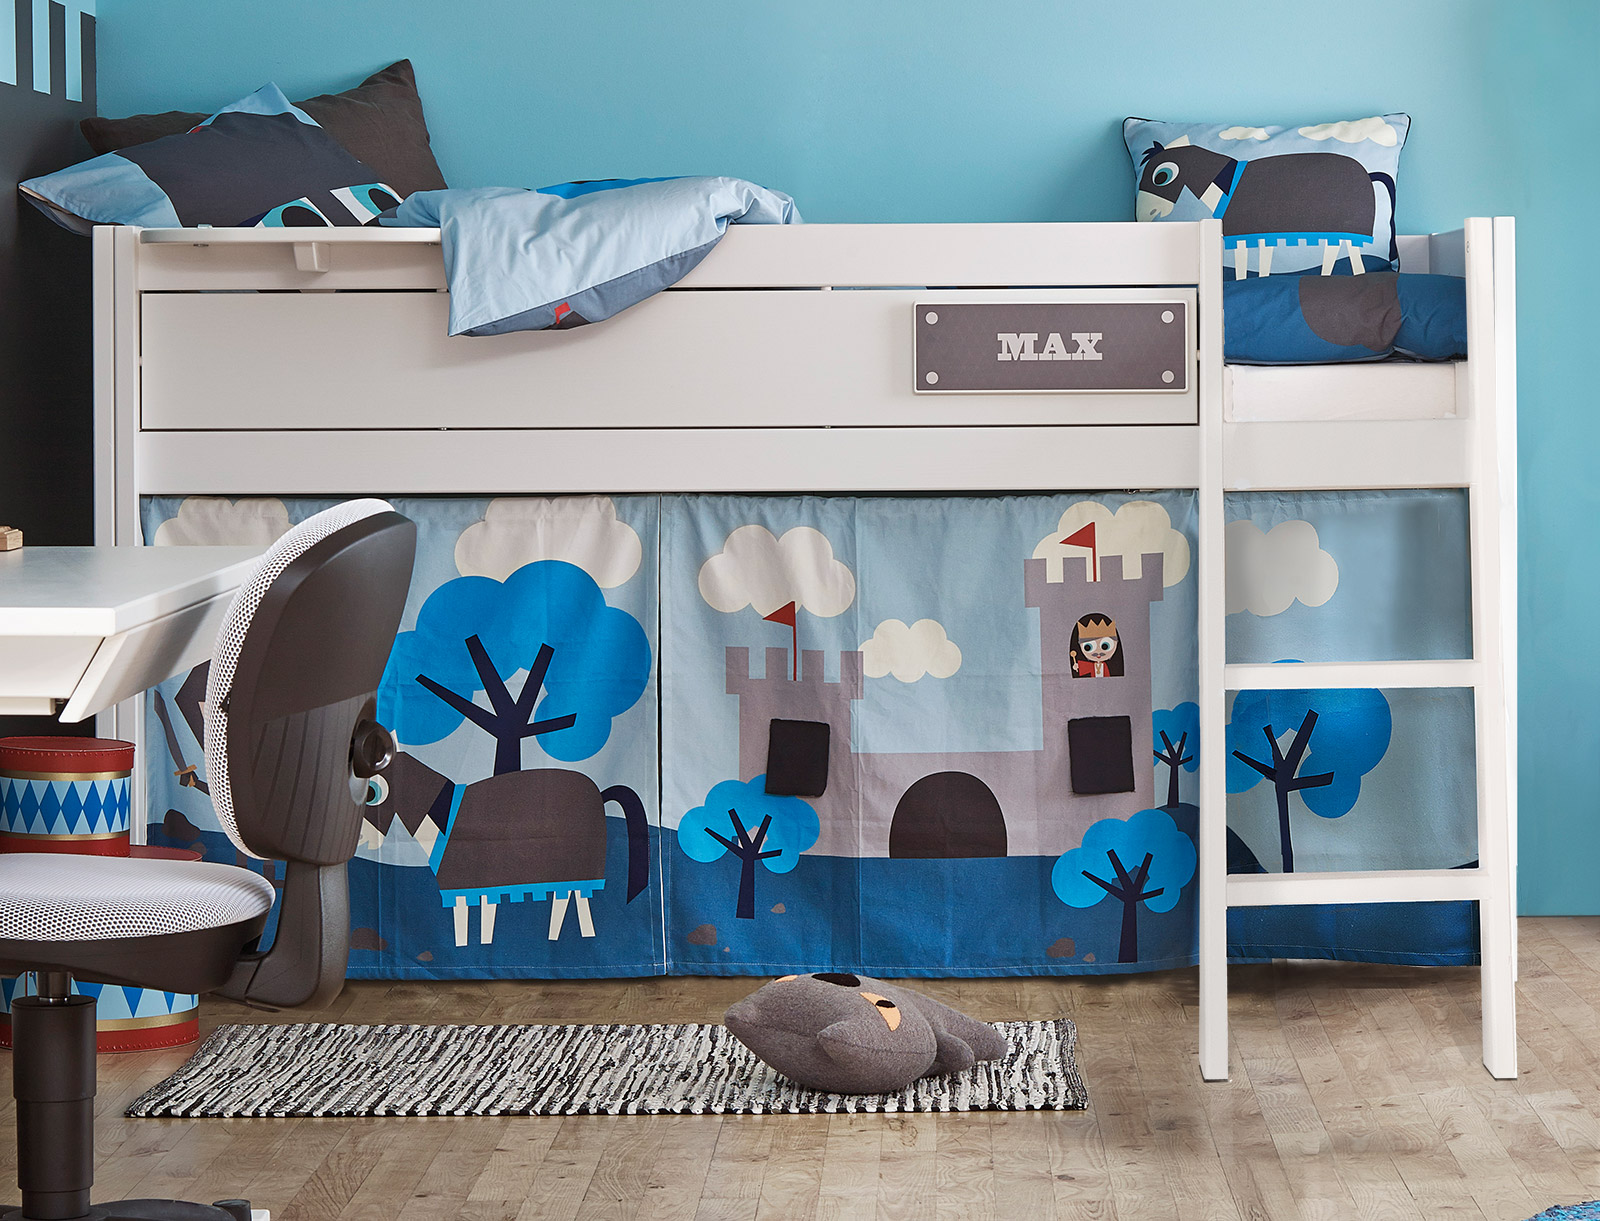 bilder kinderzimmer dschungel. Black Bedroom Furniture Sets. Home Design Ideas